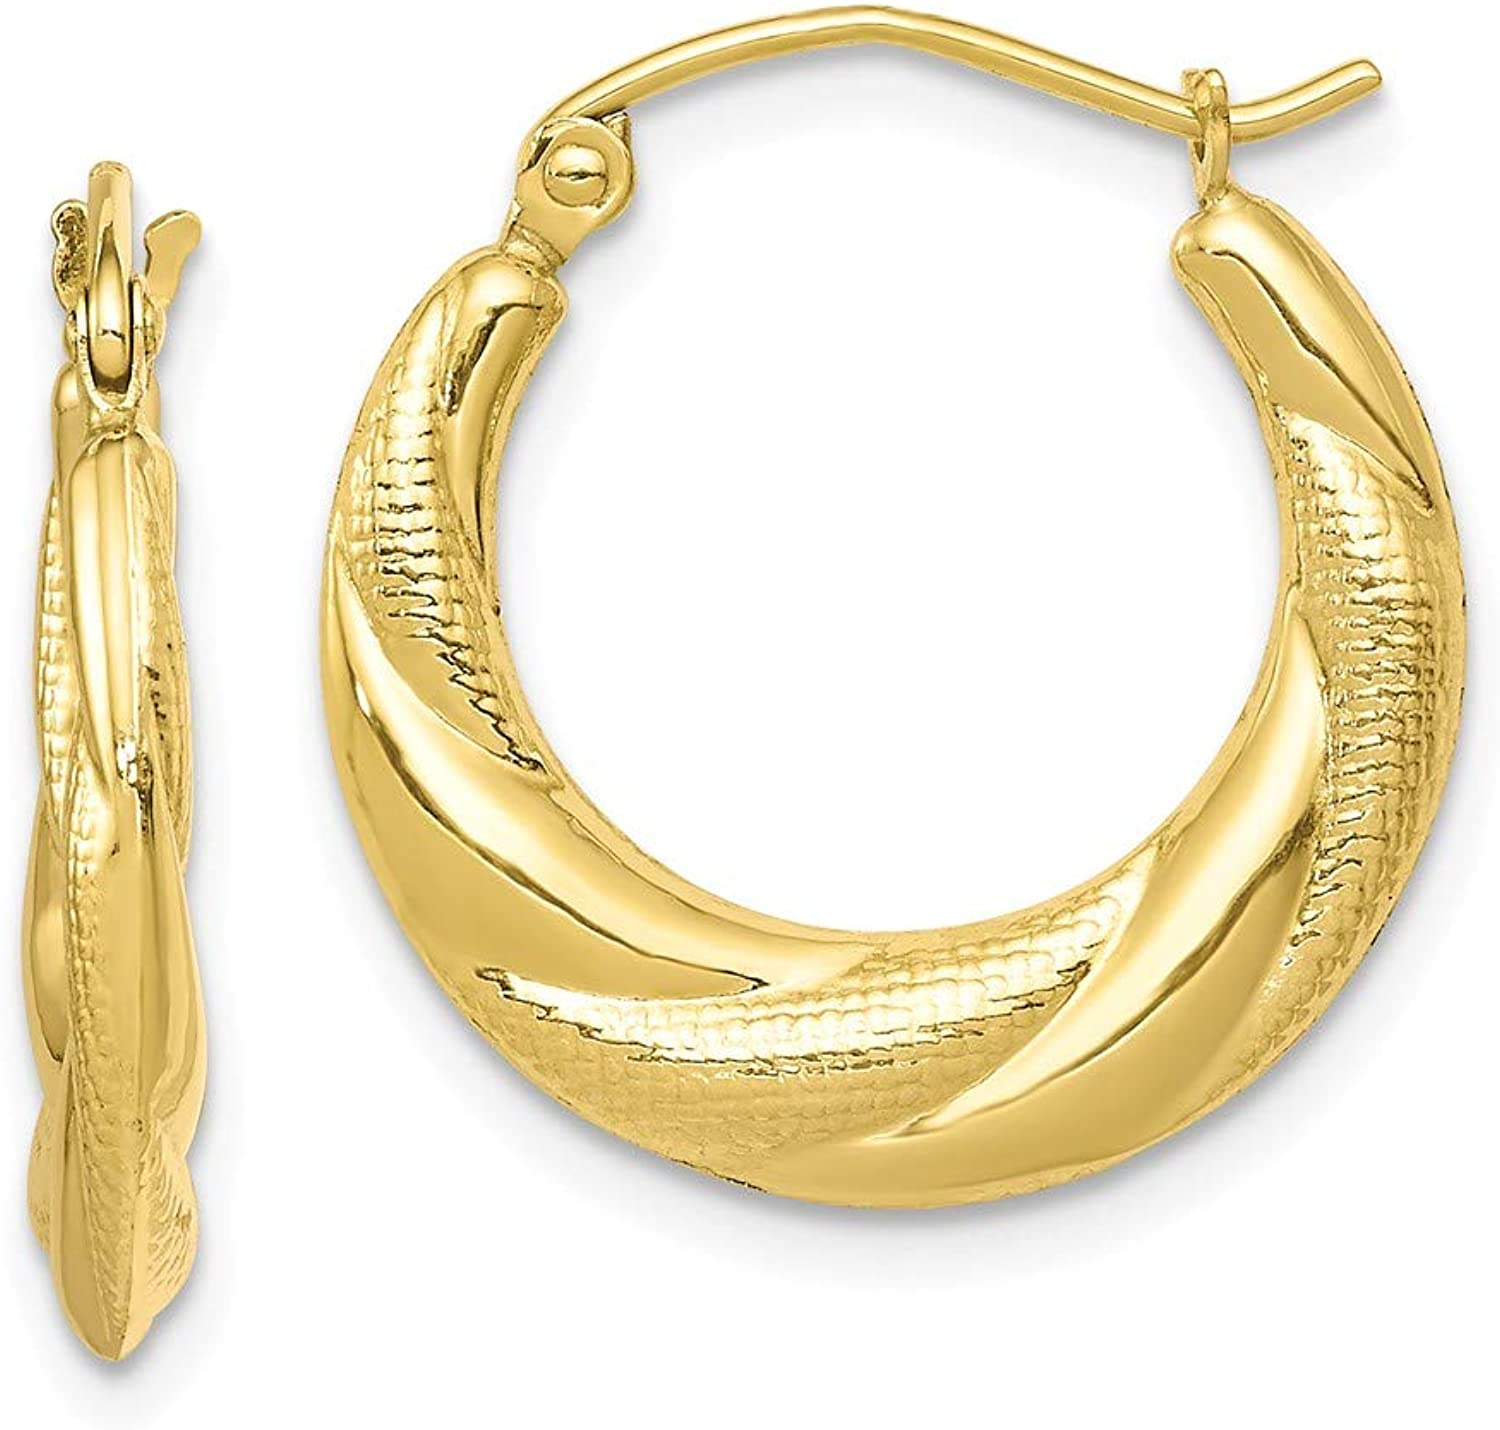 Beautiful Yellow gold 10K Yellowgold 10K Textured Scalloped Hollow Hoop Earrings